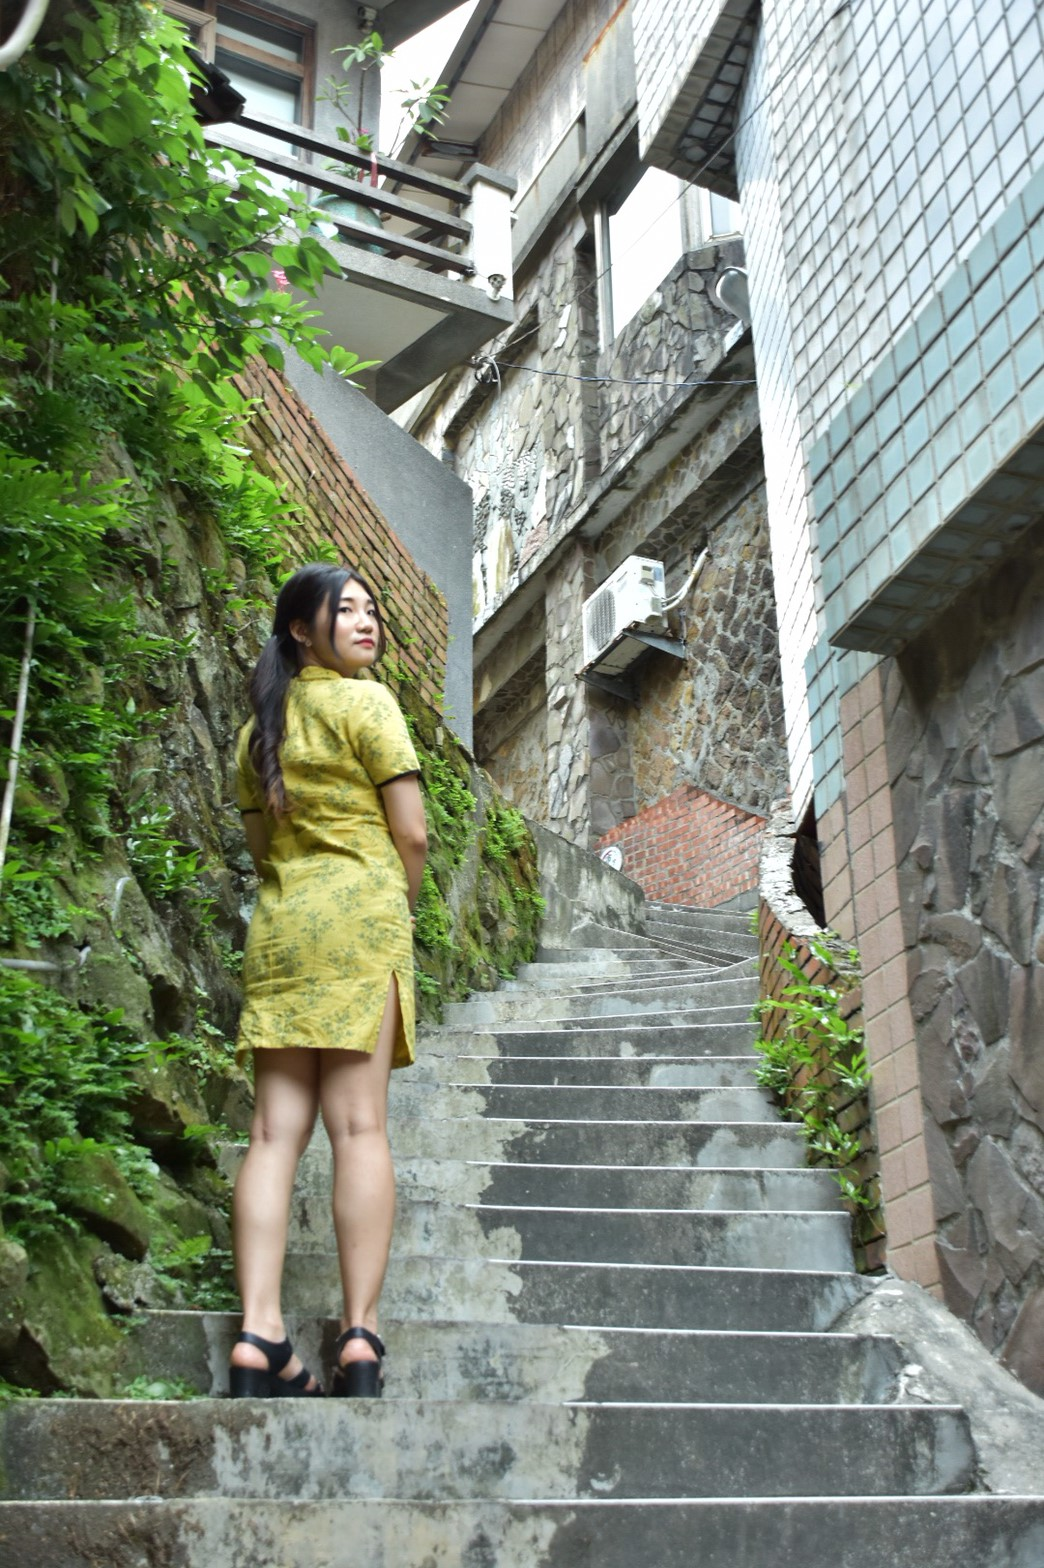 A Different life in Jiufen